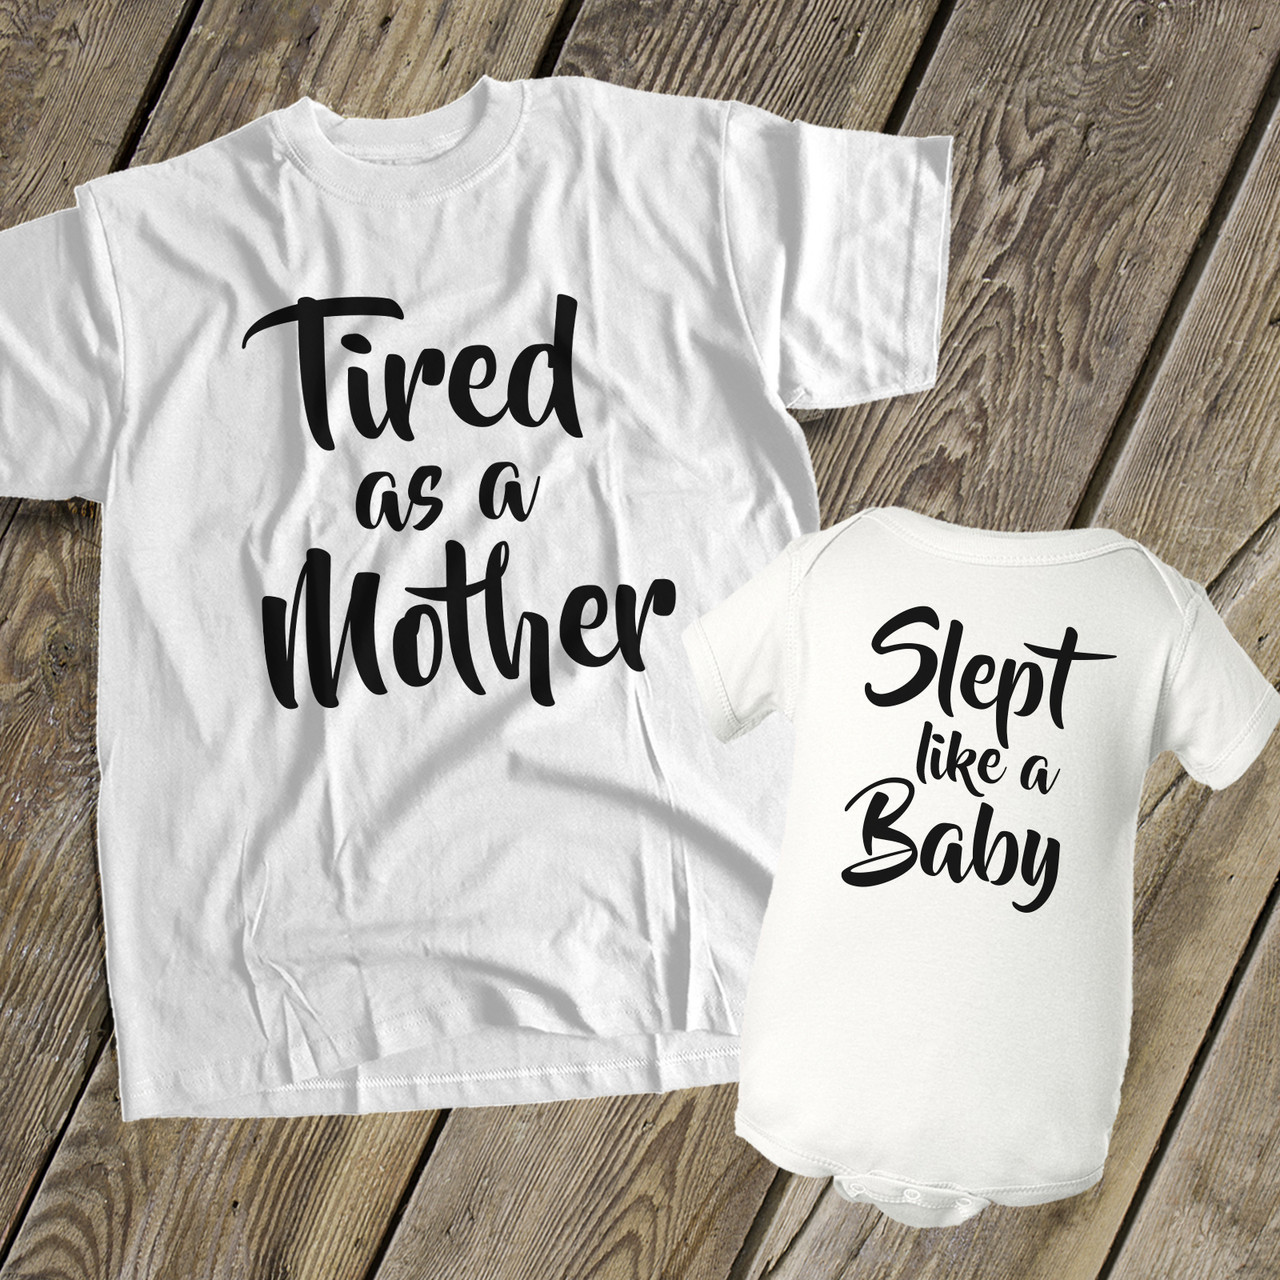 Mother/'s Day Like Mother like Daughter matching set  t-shirt baby vest glitter